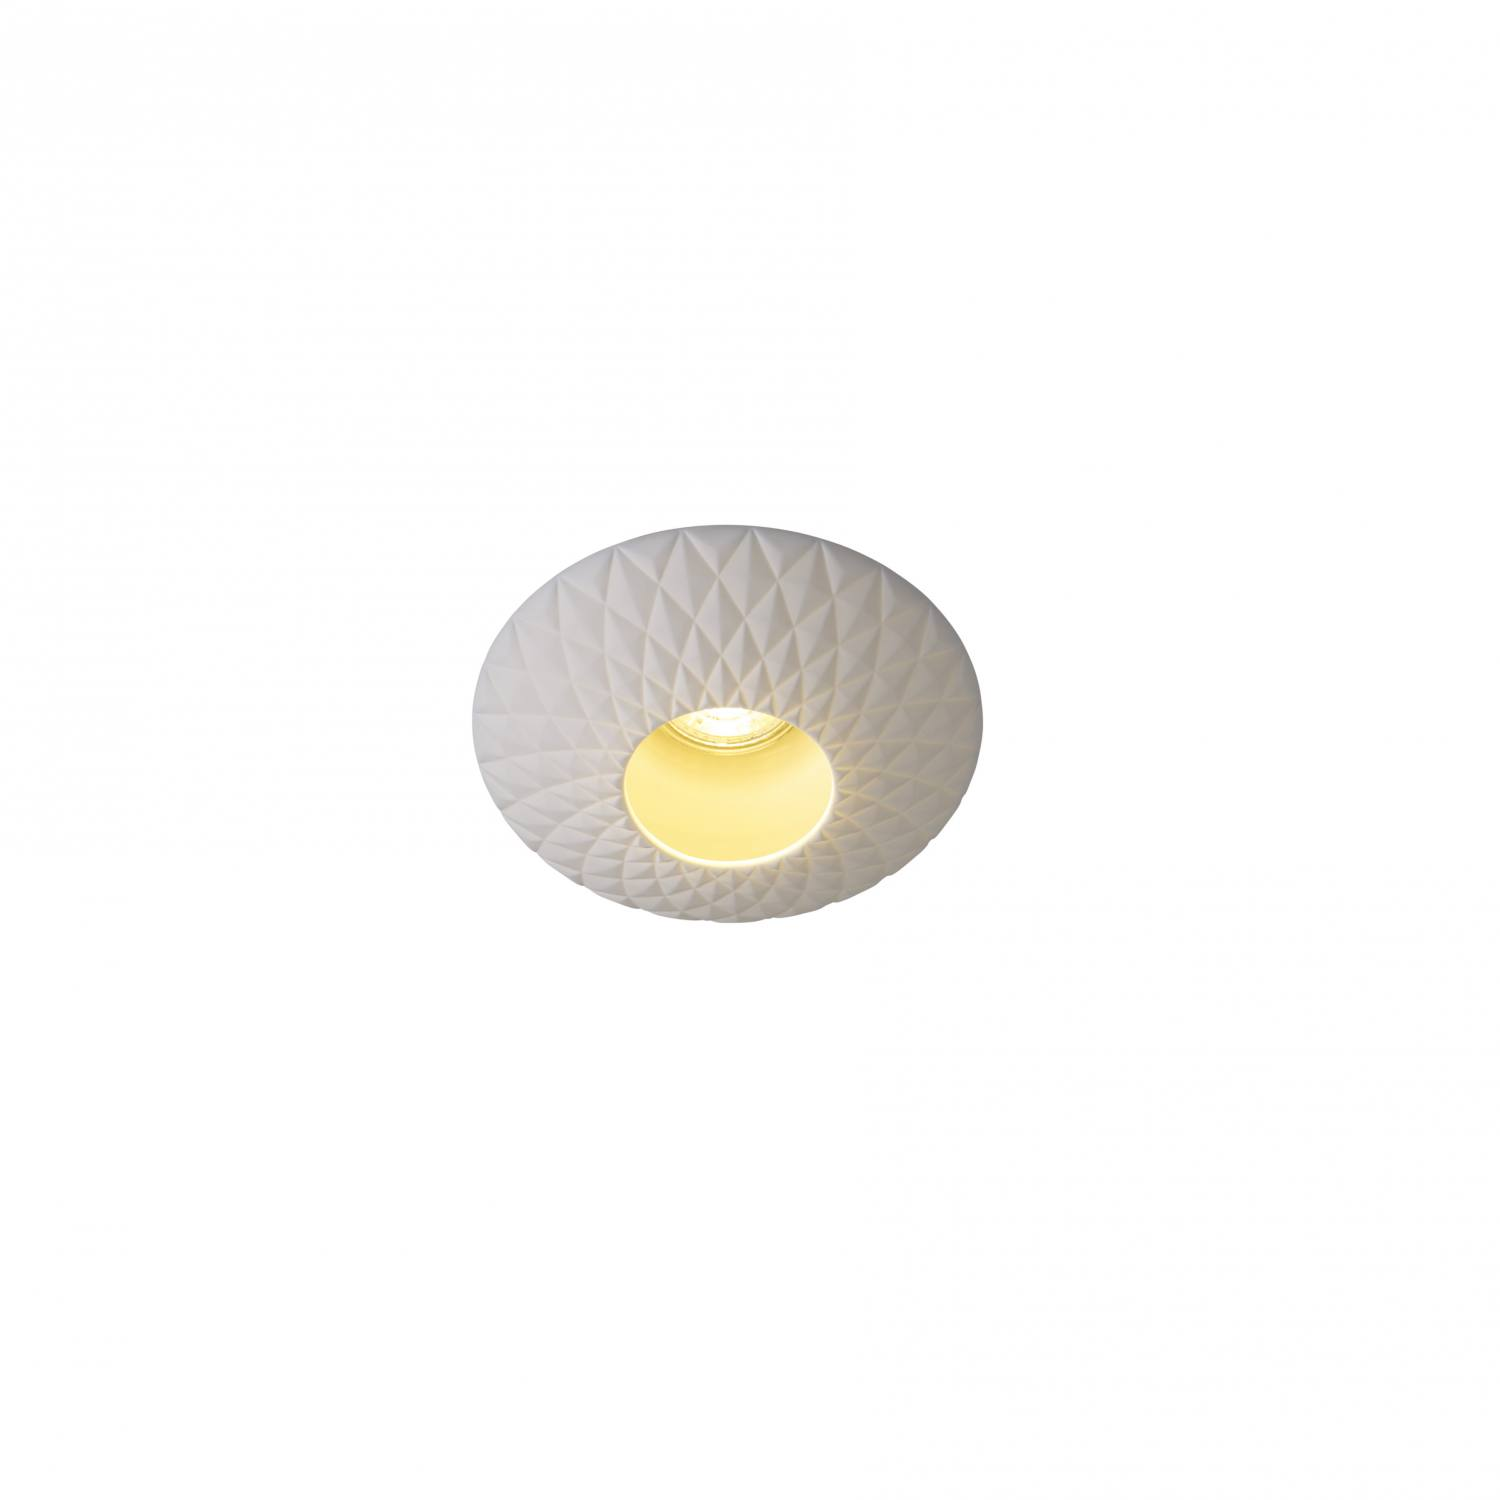 Sopra Downlight Quilted Ceiling Lamp